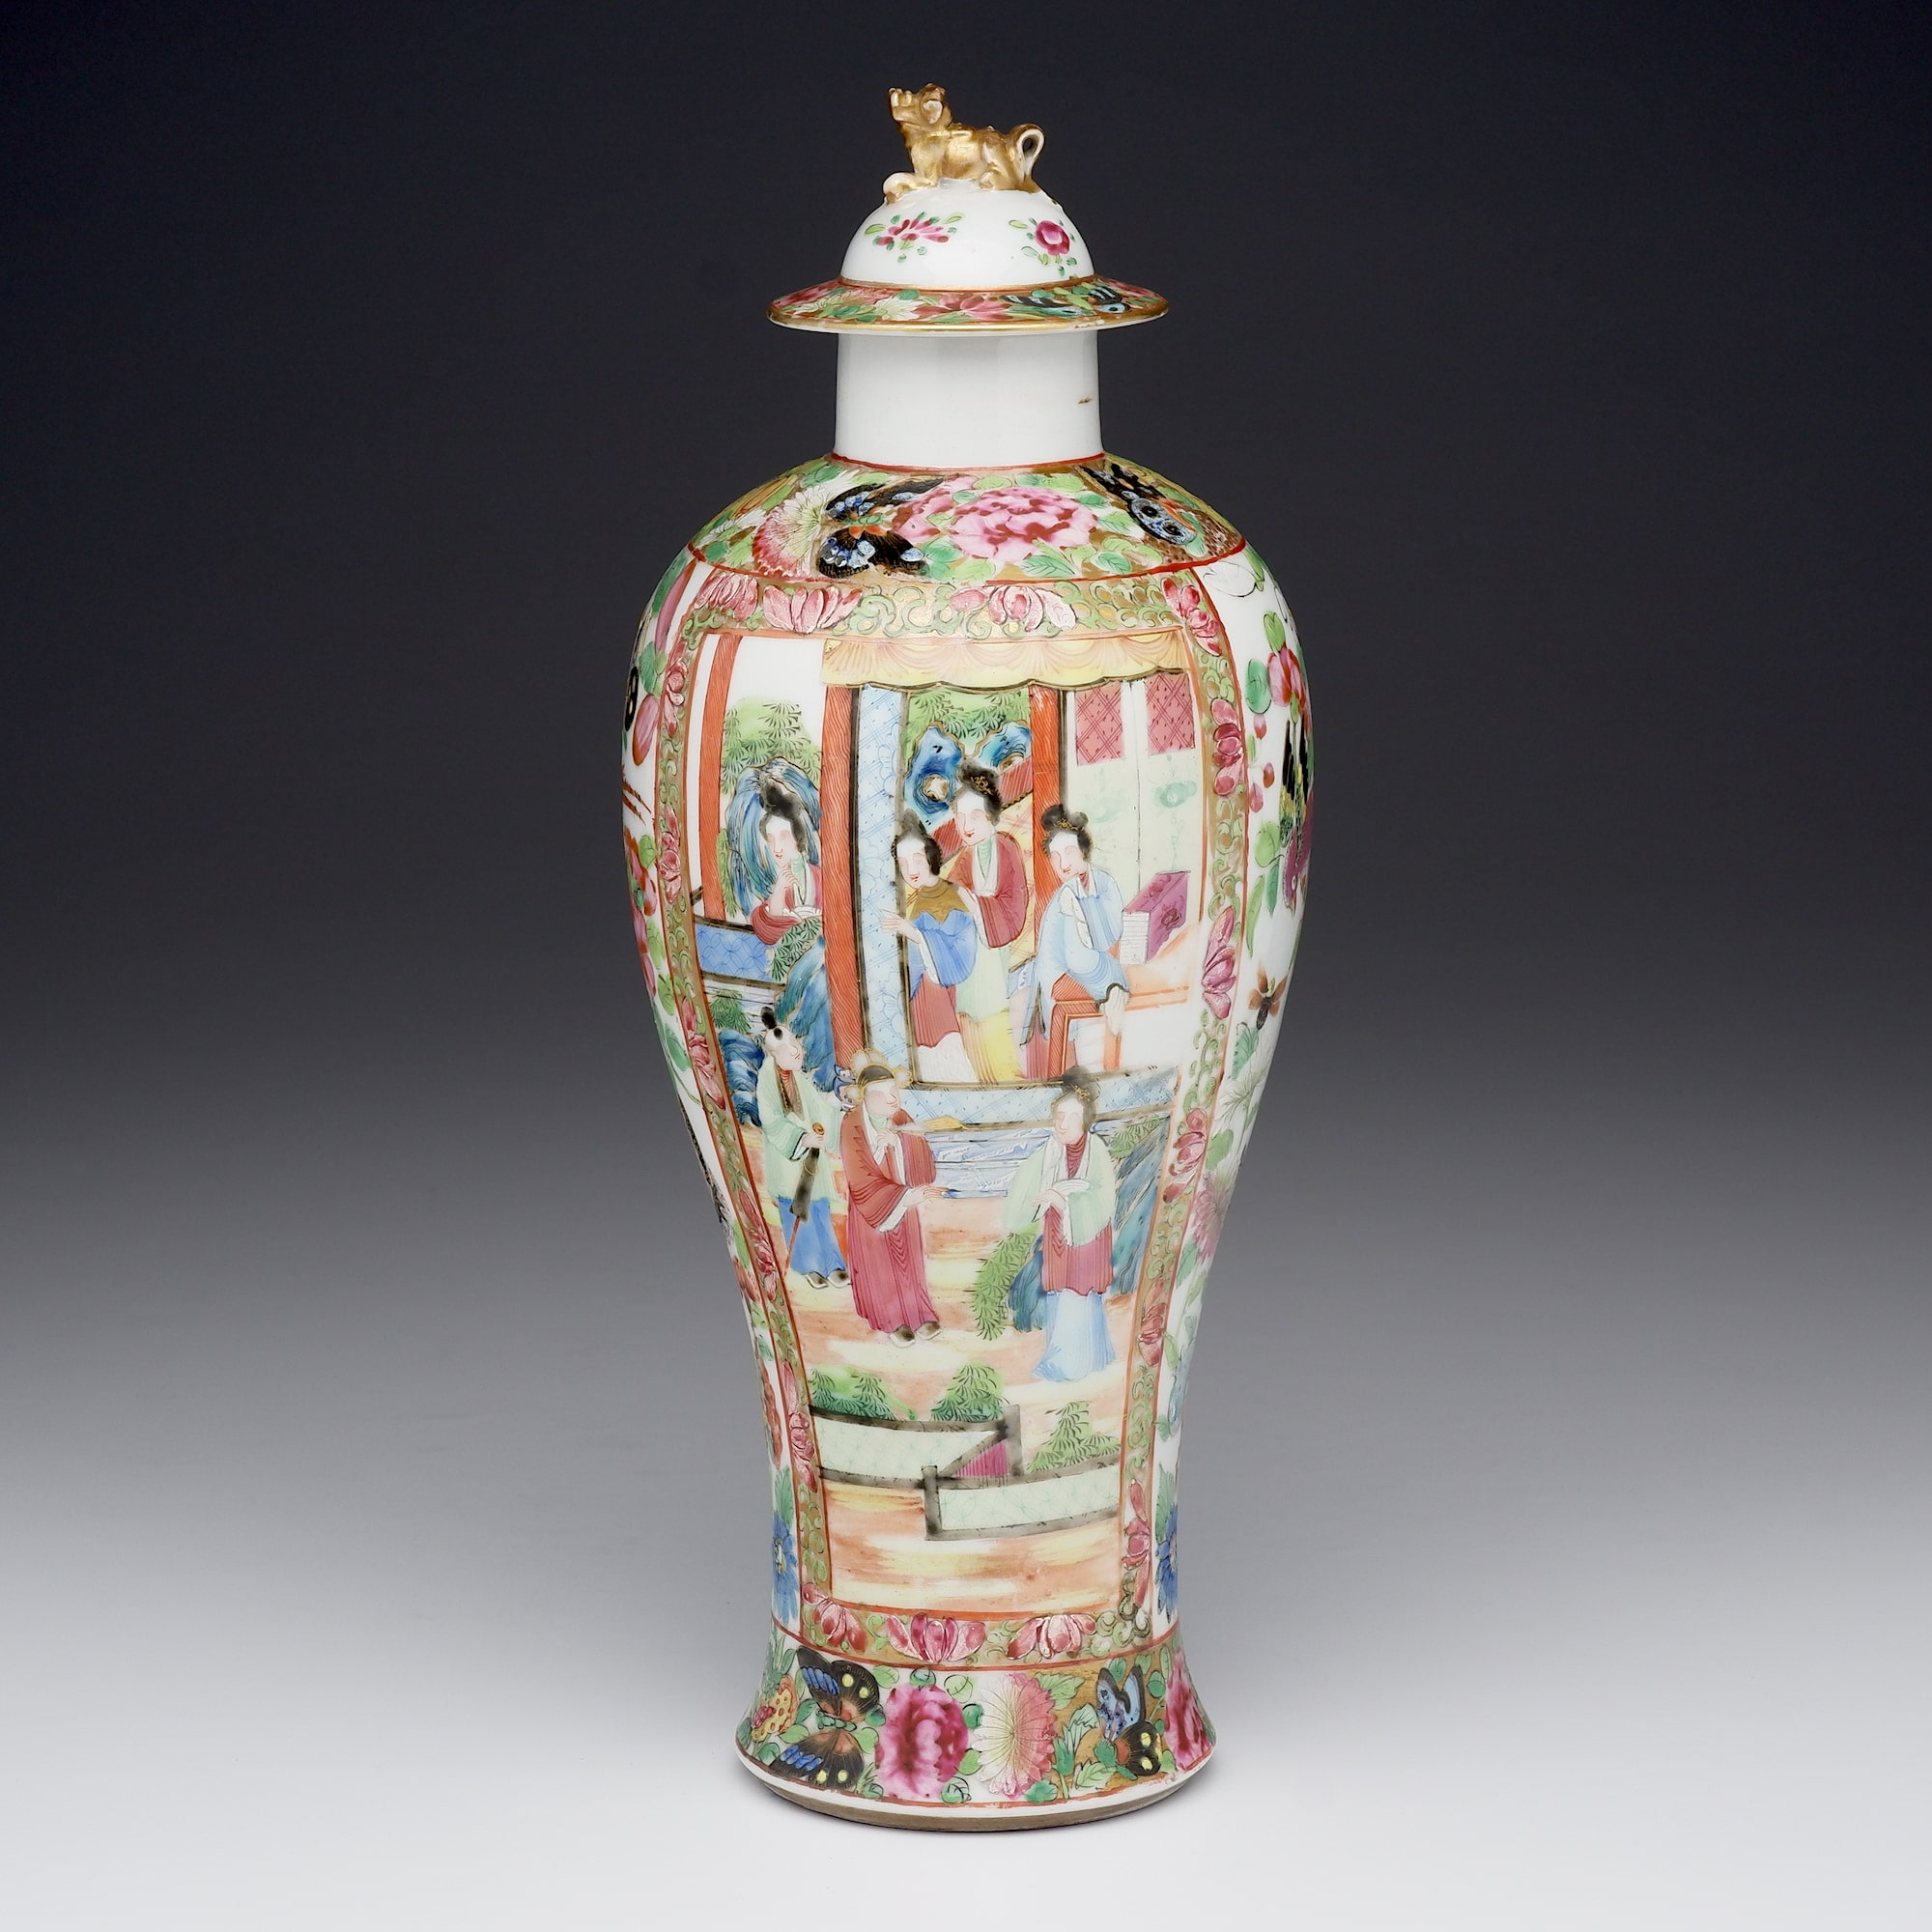 'Large Antique Chinese Export Famille Rose Vase and Cover, Late 19th Century'